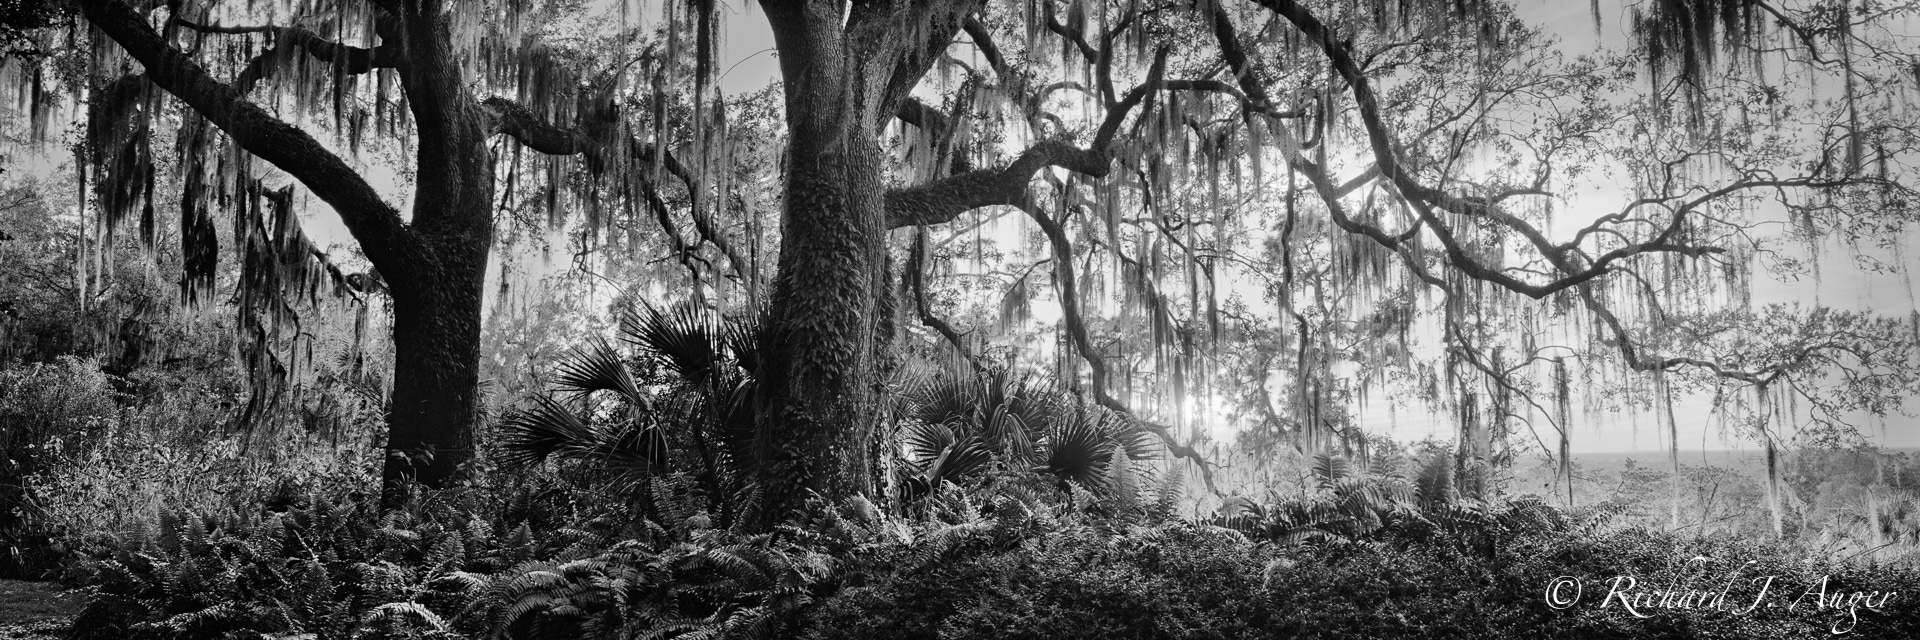 Bok Tower Gardens, Lake Wales, Florida, Forest, Oak Trees, Panorama, Black and White, Photograph